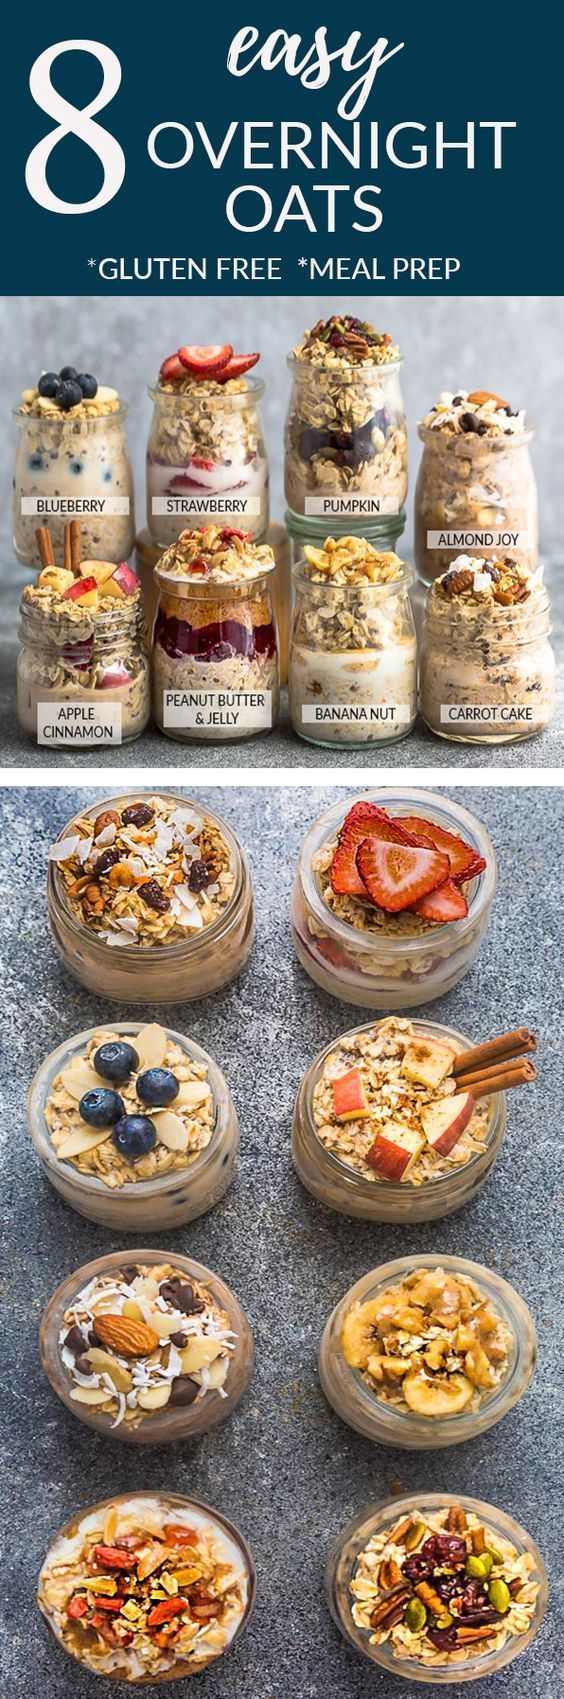 8 Healthy and delicious OVERNIGHT OATS – simple no-cook make-ahead oatmeal perfect for busy mornings. Best of all, gluten free and so easy to customize with your favorite flavors. Super simple to make ahead the night before for meal prep Sunday with less than 5 minutes. Almond Joy, Apple Cinnamon, Banana Nut, Blueberry, Carrot Cake, Peanut Butter & Jelly, Pumpkin Cranberry and Strawberry. #overnightoats #oatmeal #breakfast #glutenfree #recipe #healthy #nocook